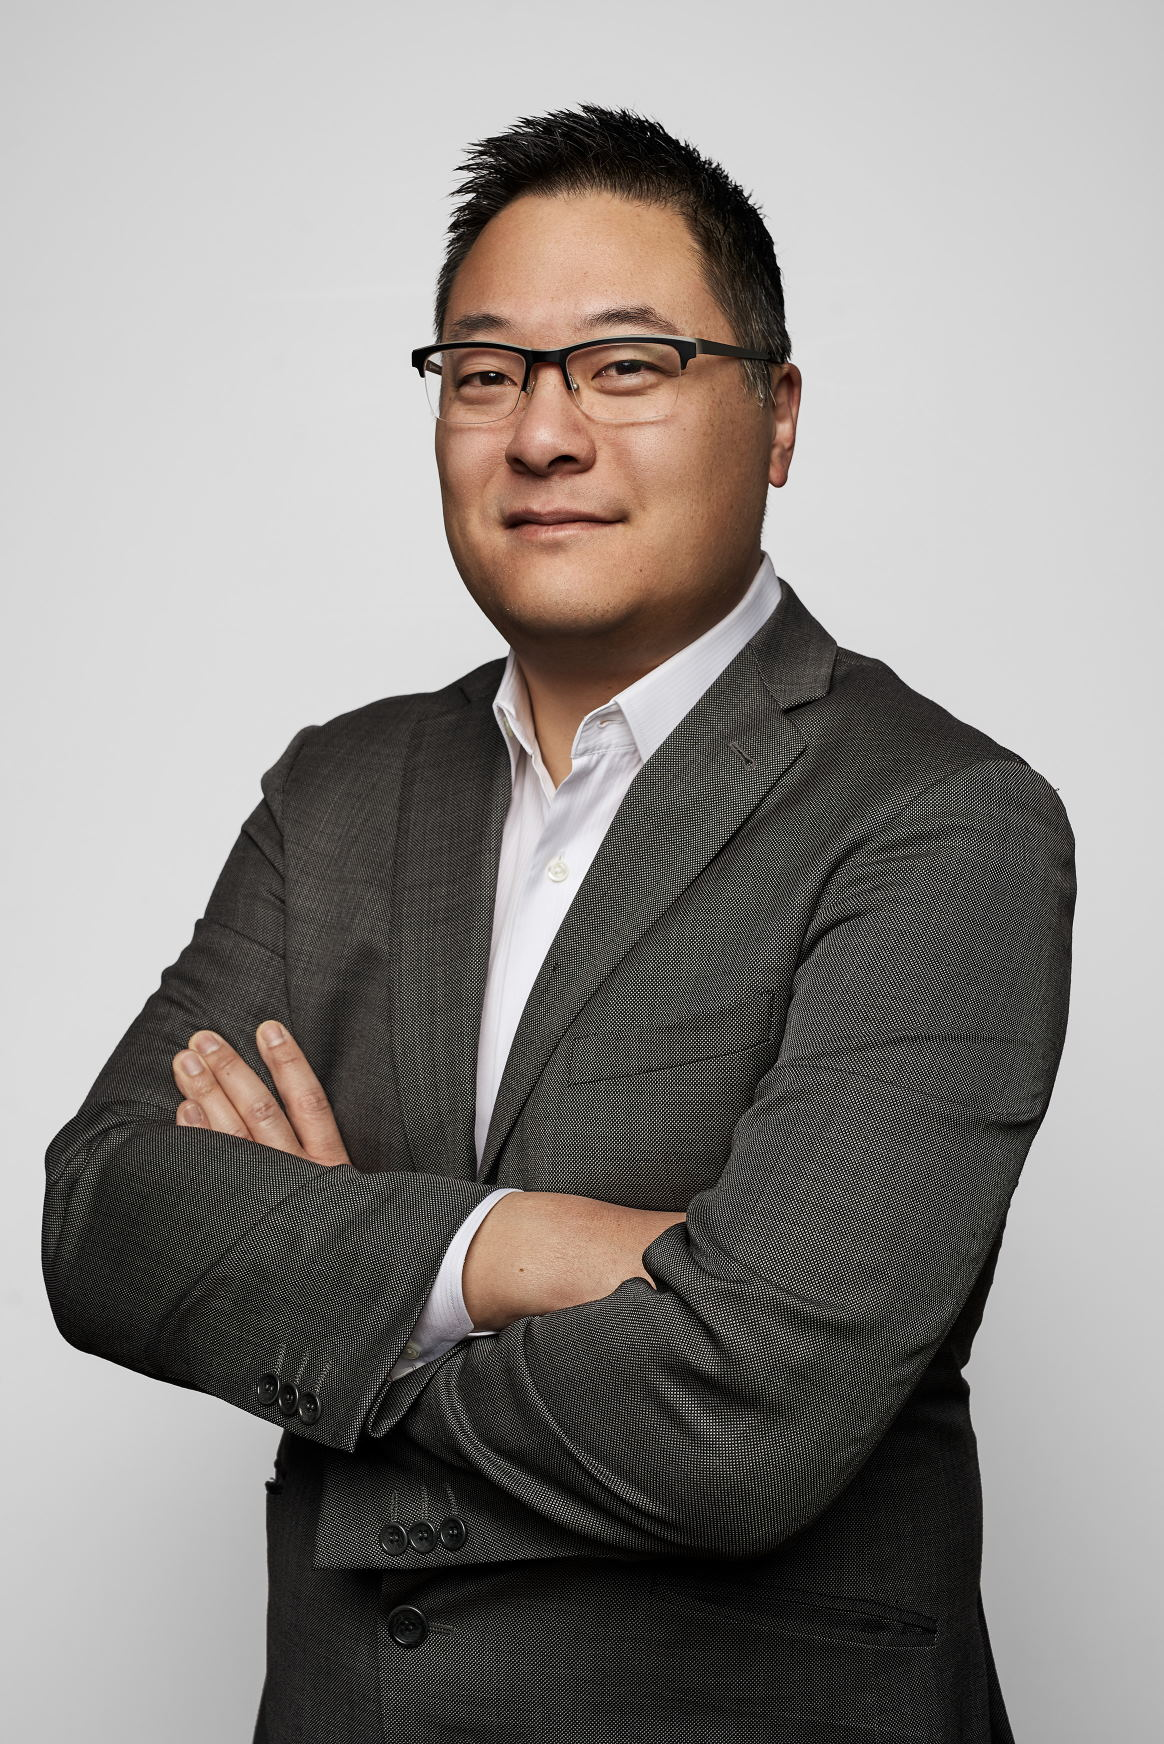 Daryl Ching Vistance Capital